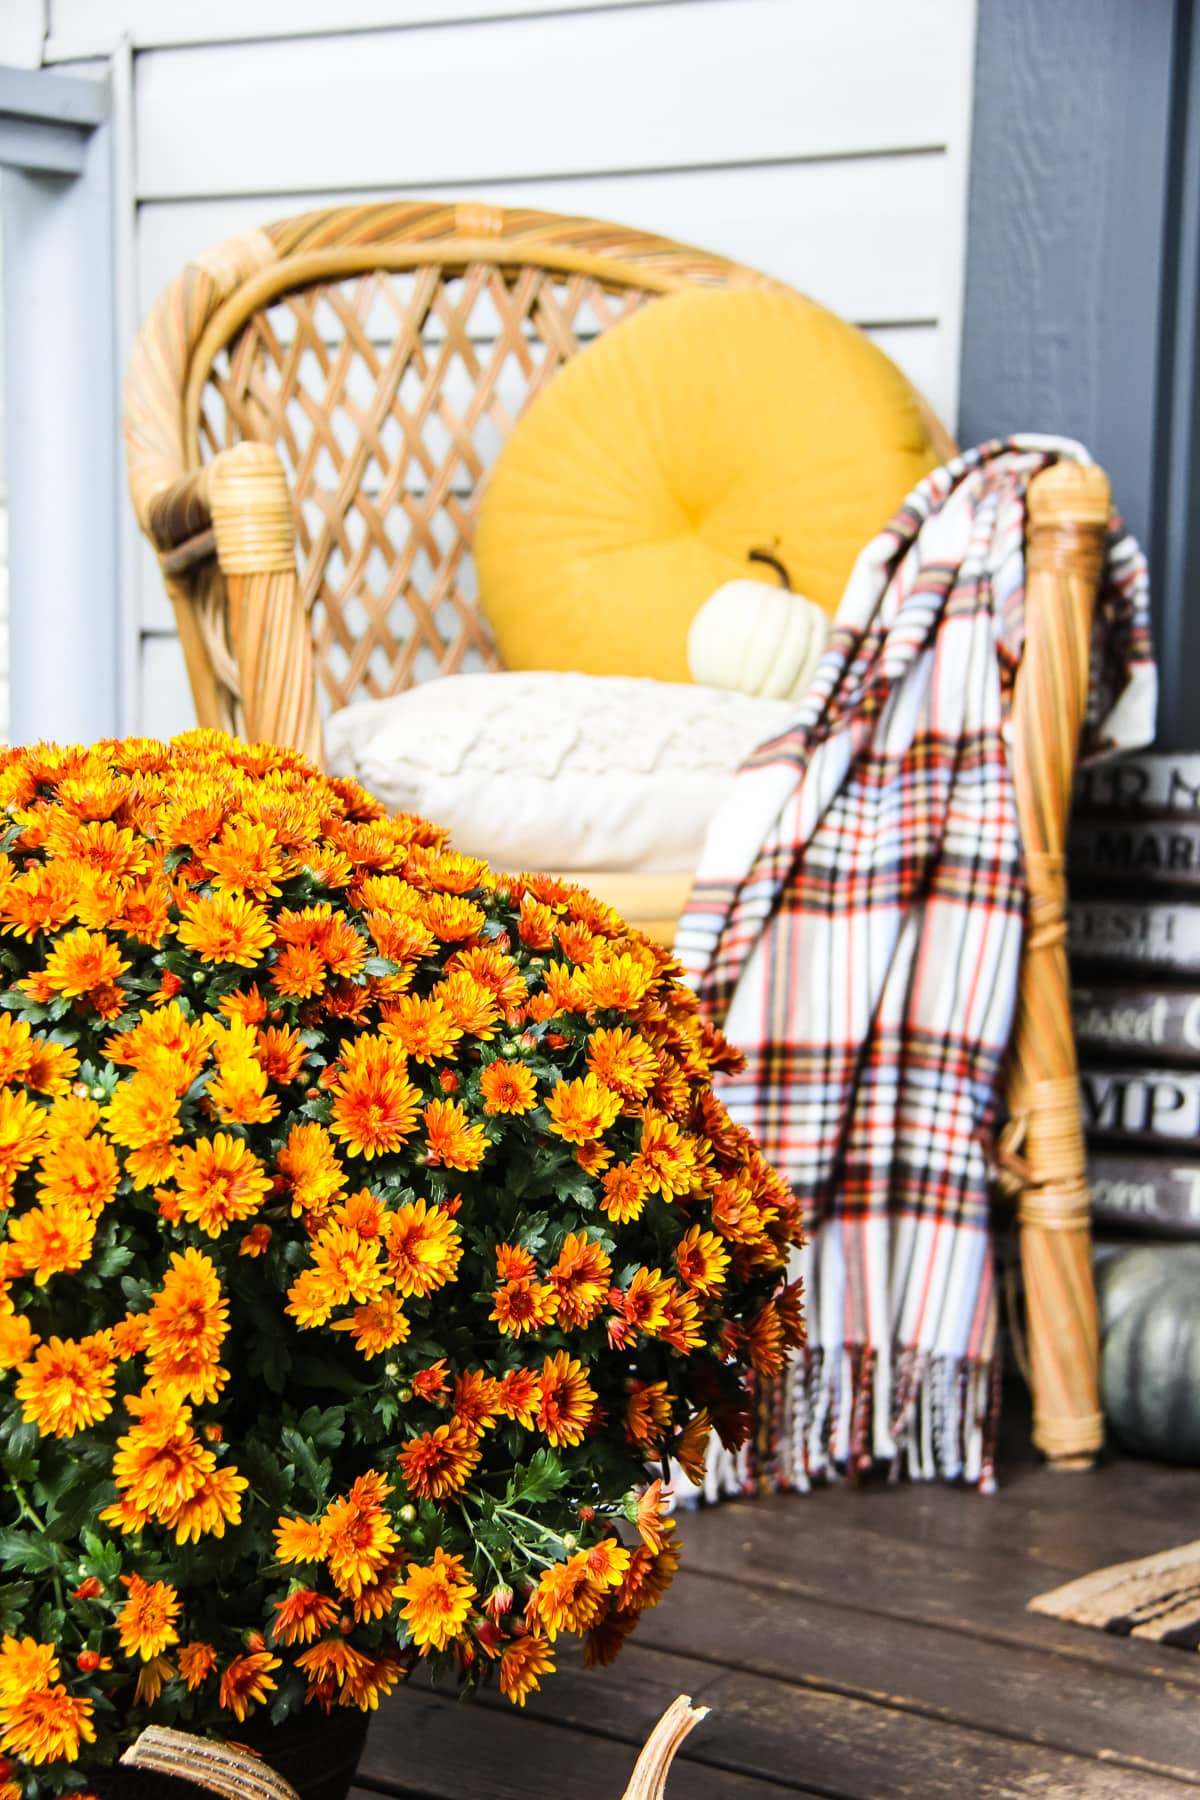 a close up of an orange chrysanthemum. in the background is a wicker chair with a yellow pillow and plaid blanket